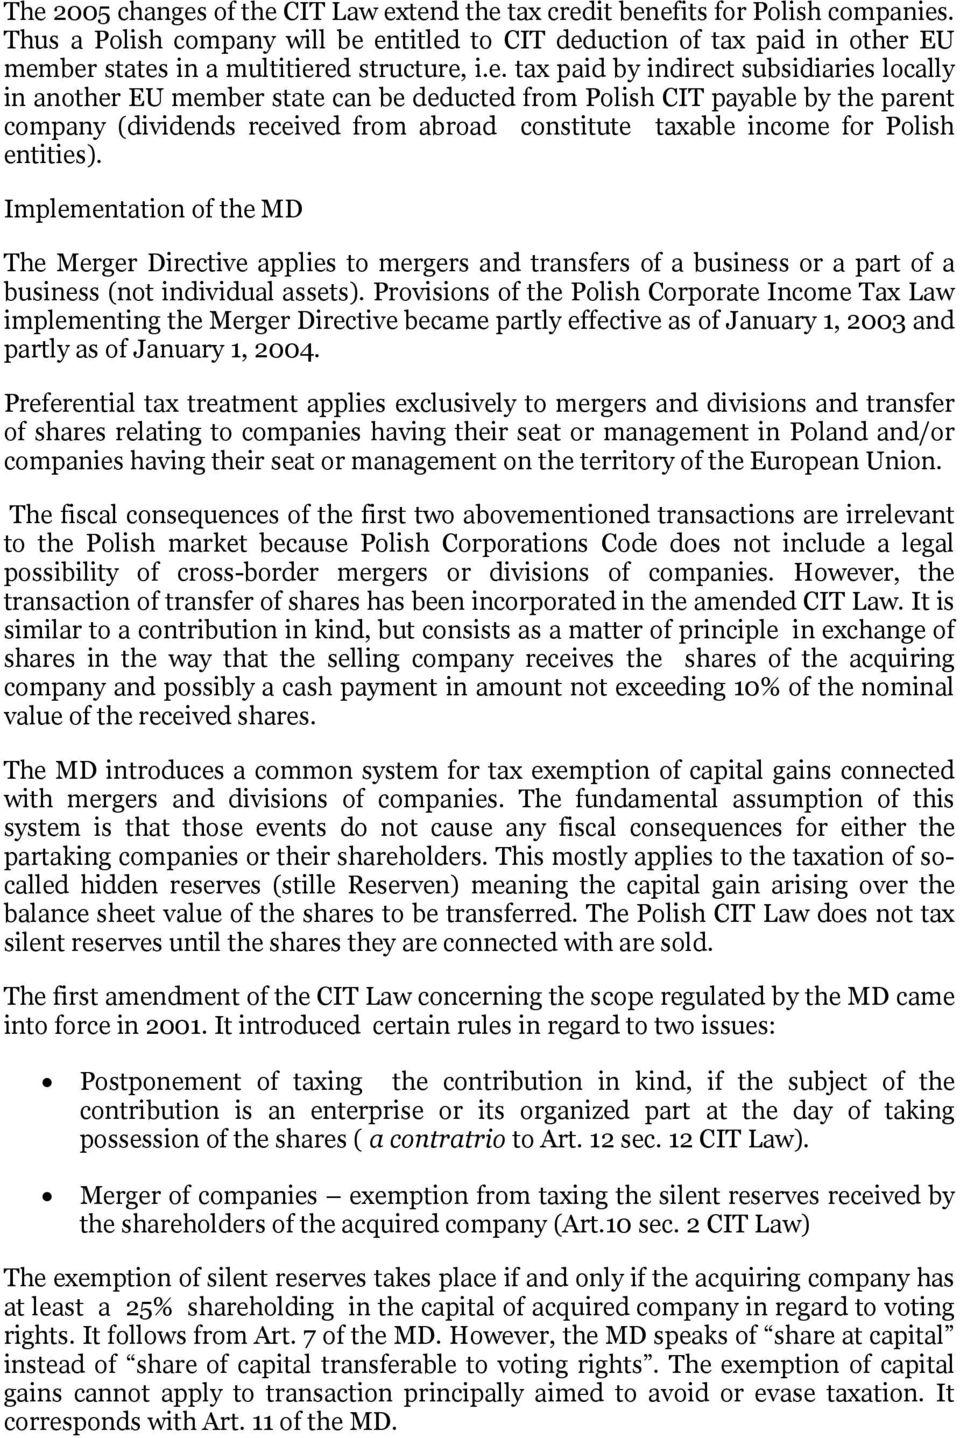 entitled to CIT deduction of tax paid in other EU member states in a multitiered structure, i.e. tax paid by indirect subsidiaries locally in another EU member state can be deducted from Polish CIT